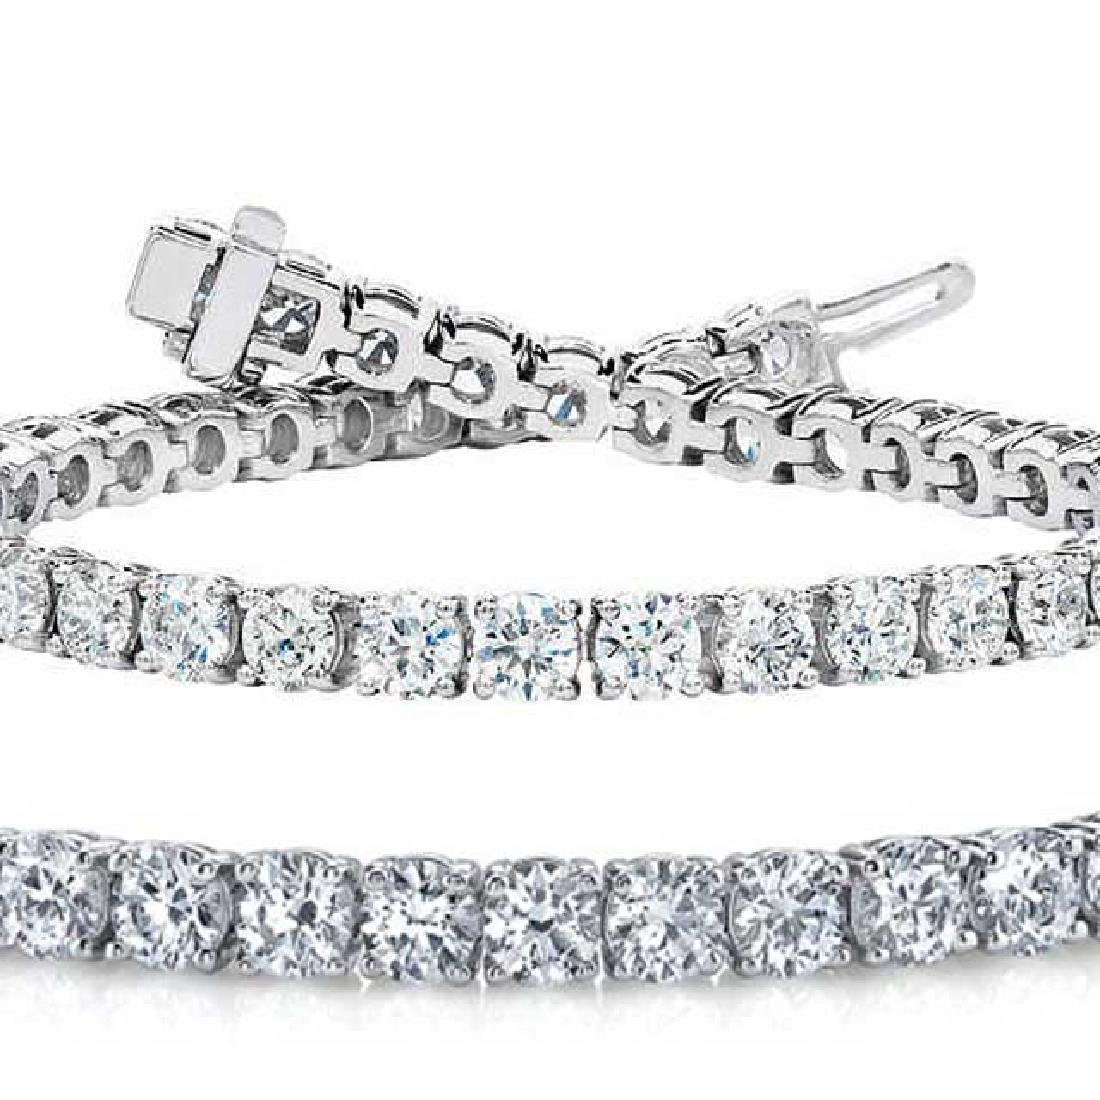 Natural 7ct VS-SI Diamond Tennis Bracelet Platinum -